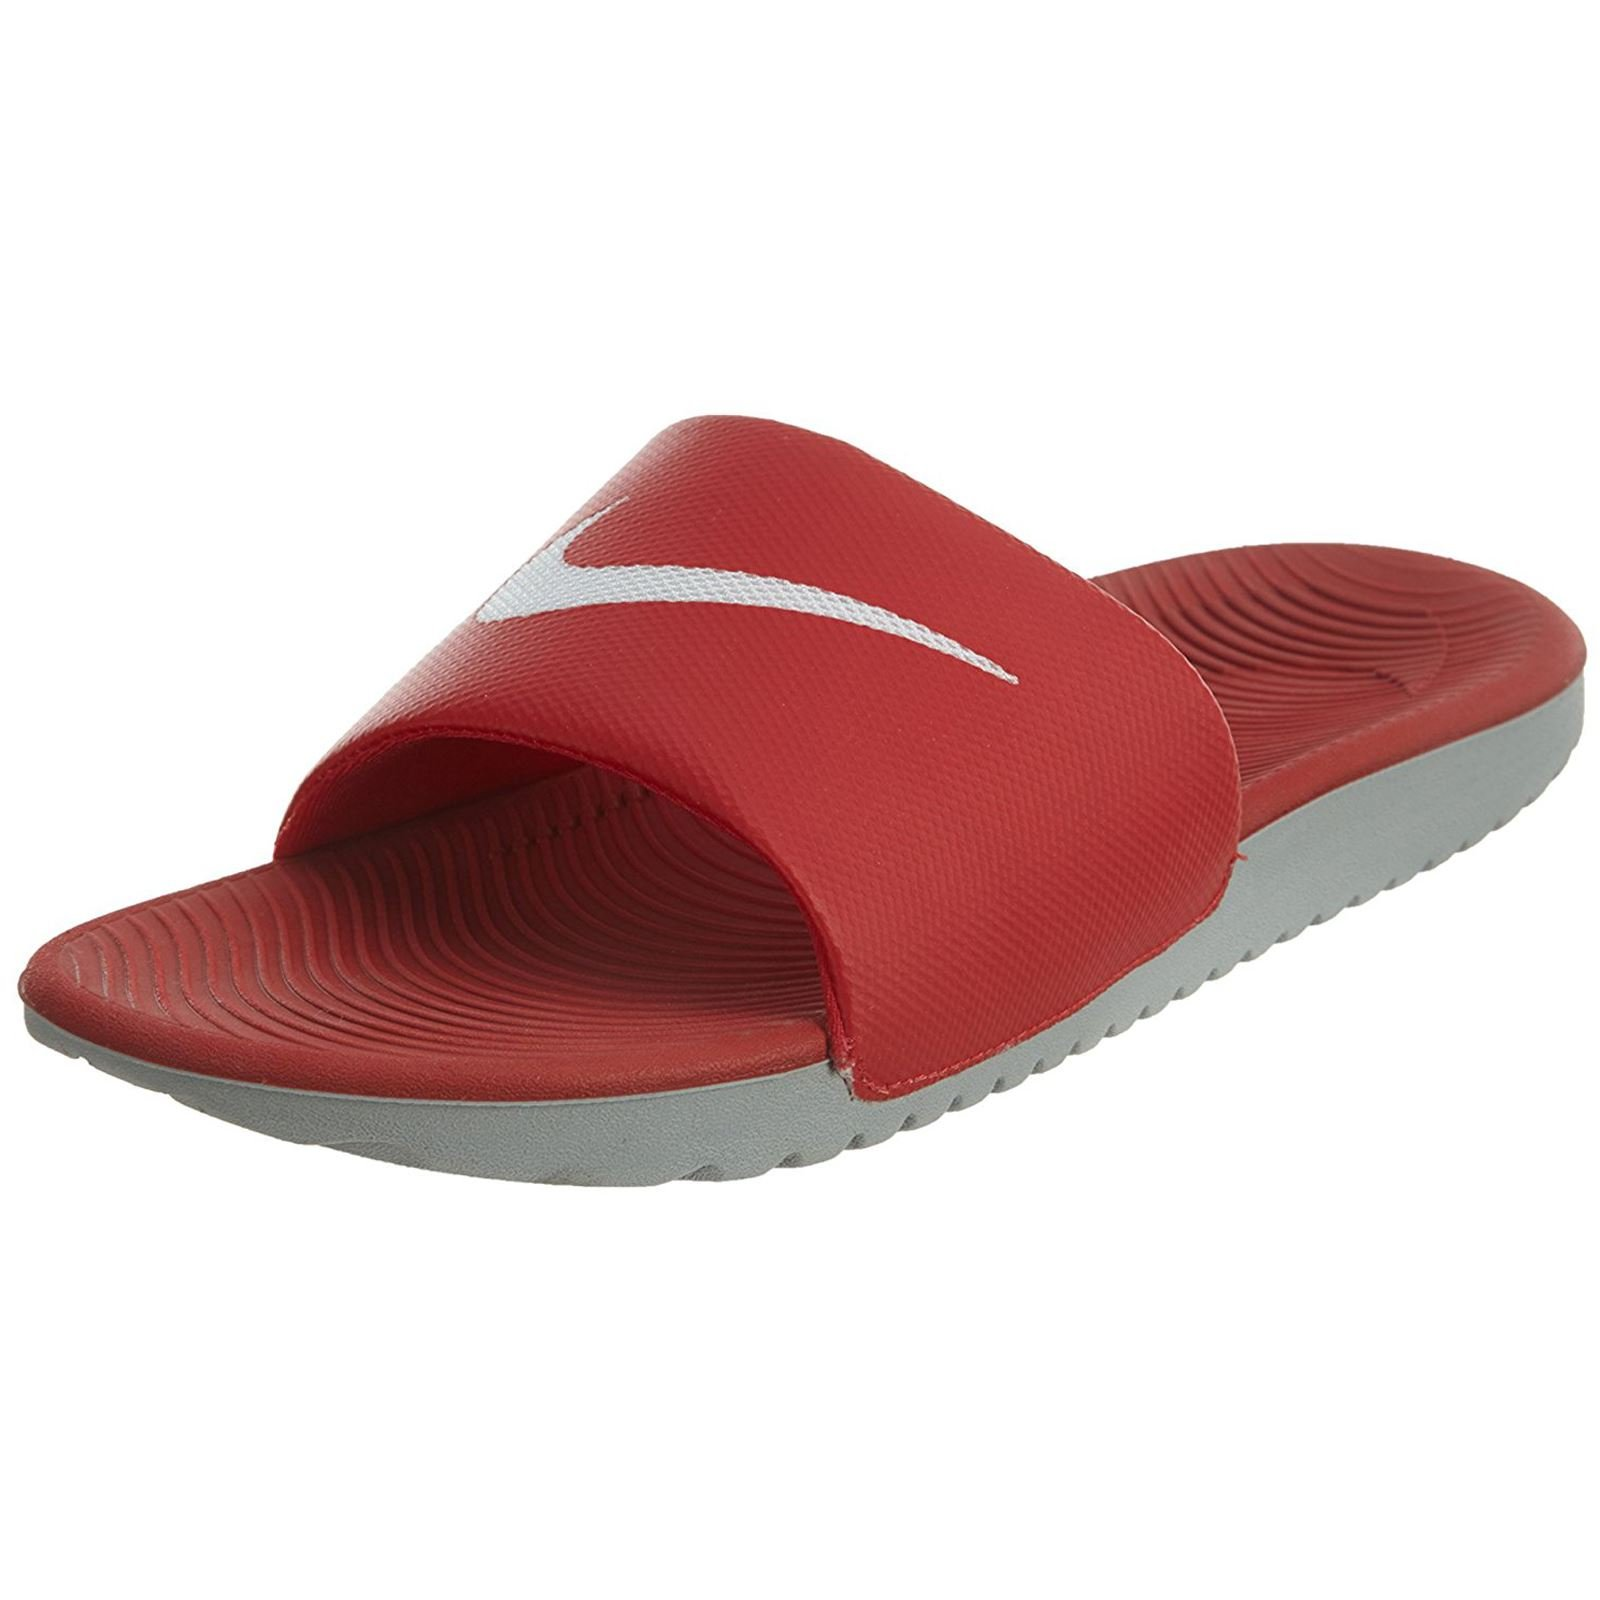 b193588eac7b5e Galleon - Nike Men s Kawa Slide Athletic Sandal